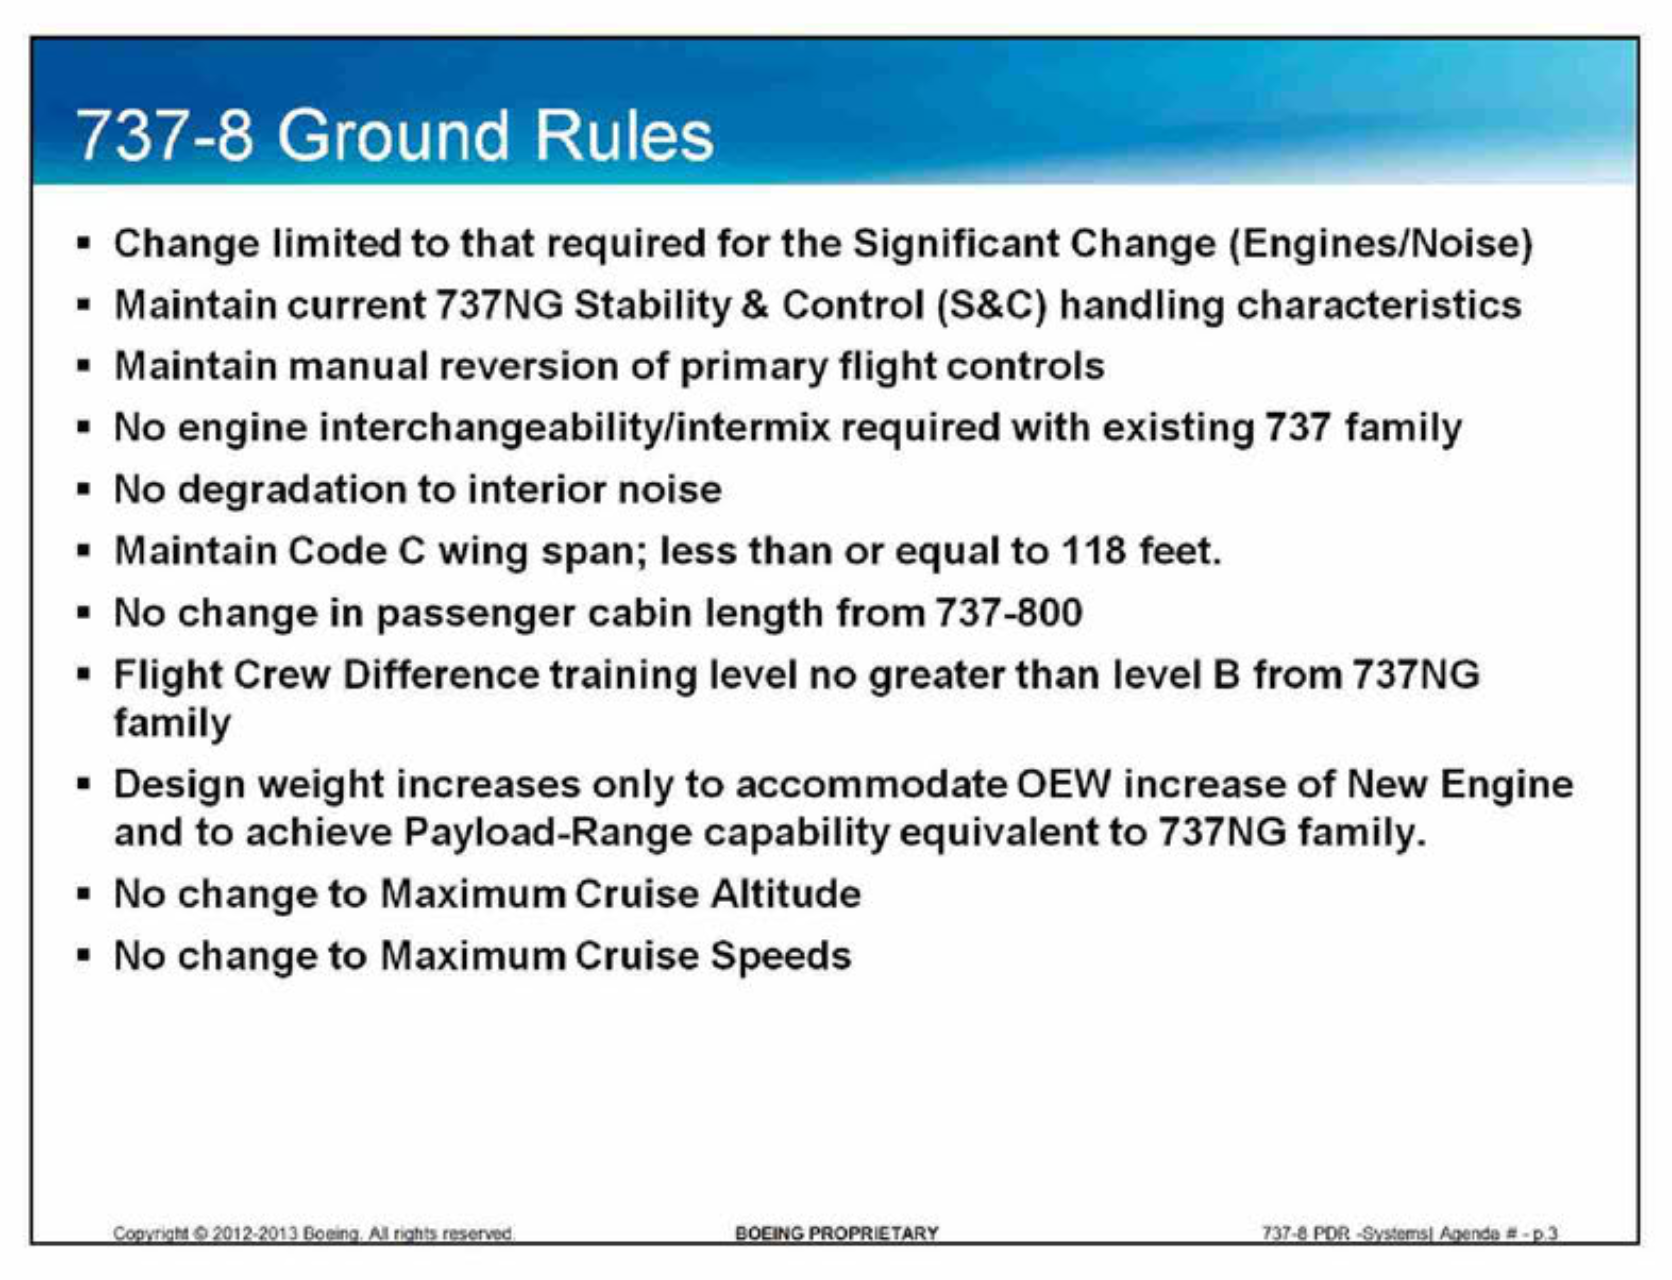 Boeing outlined the key program directives for the 737 Max program to Southwest Airlines in a 2013 presentation.